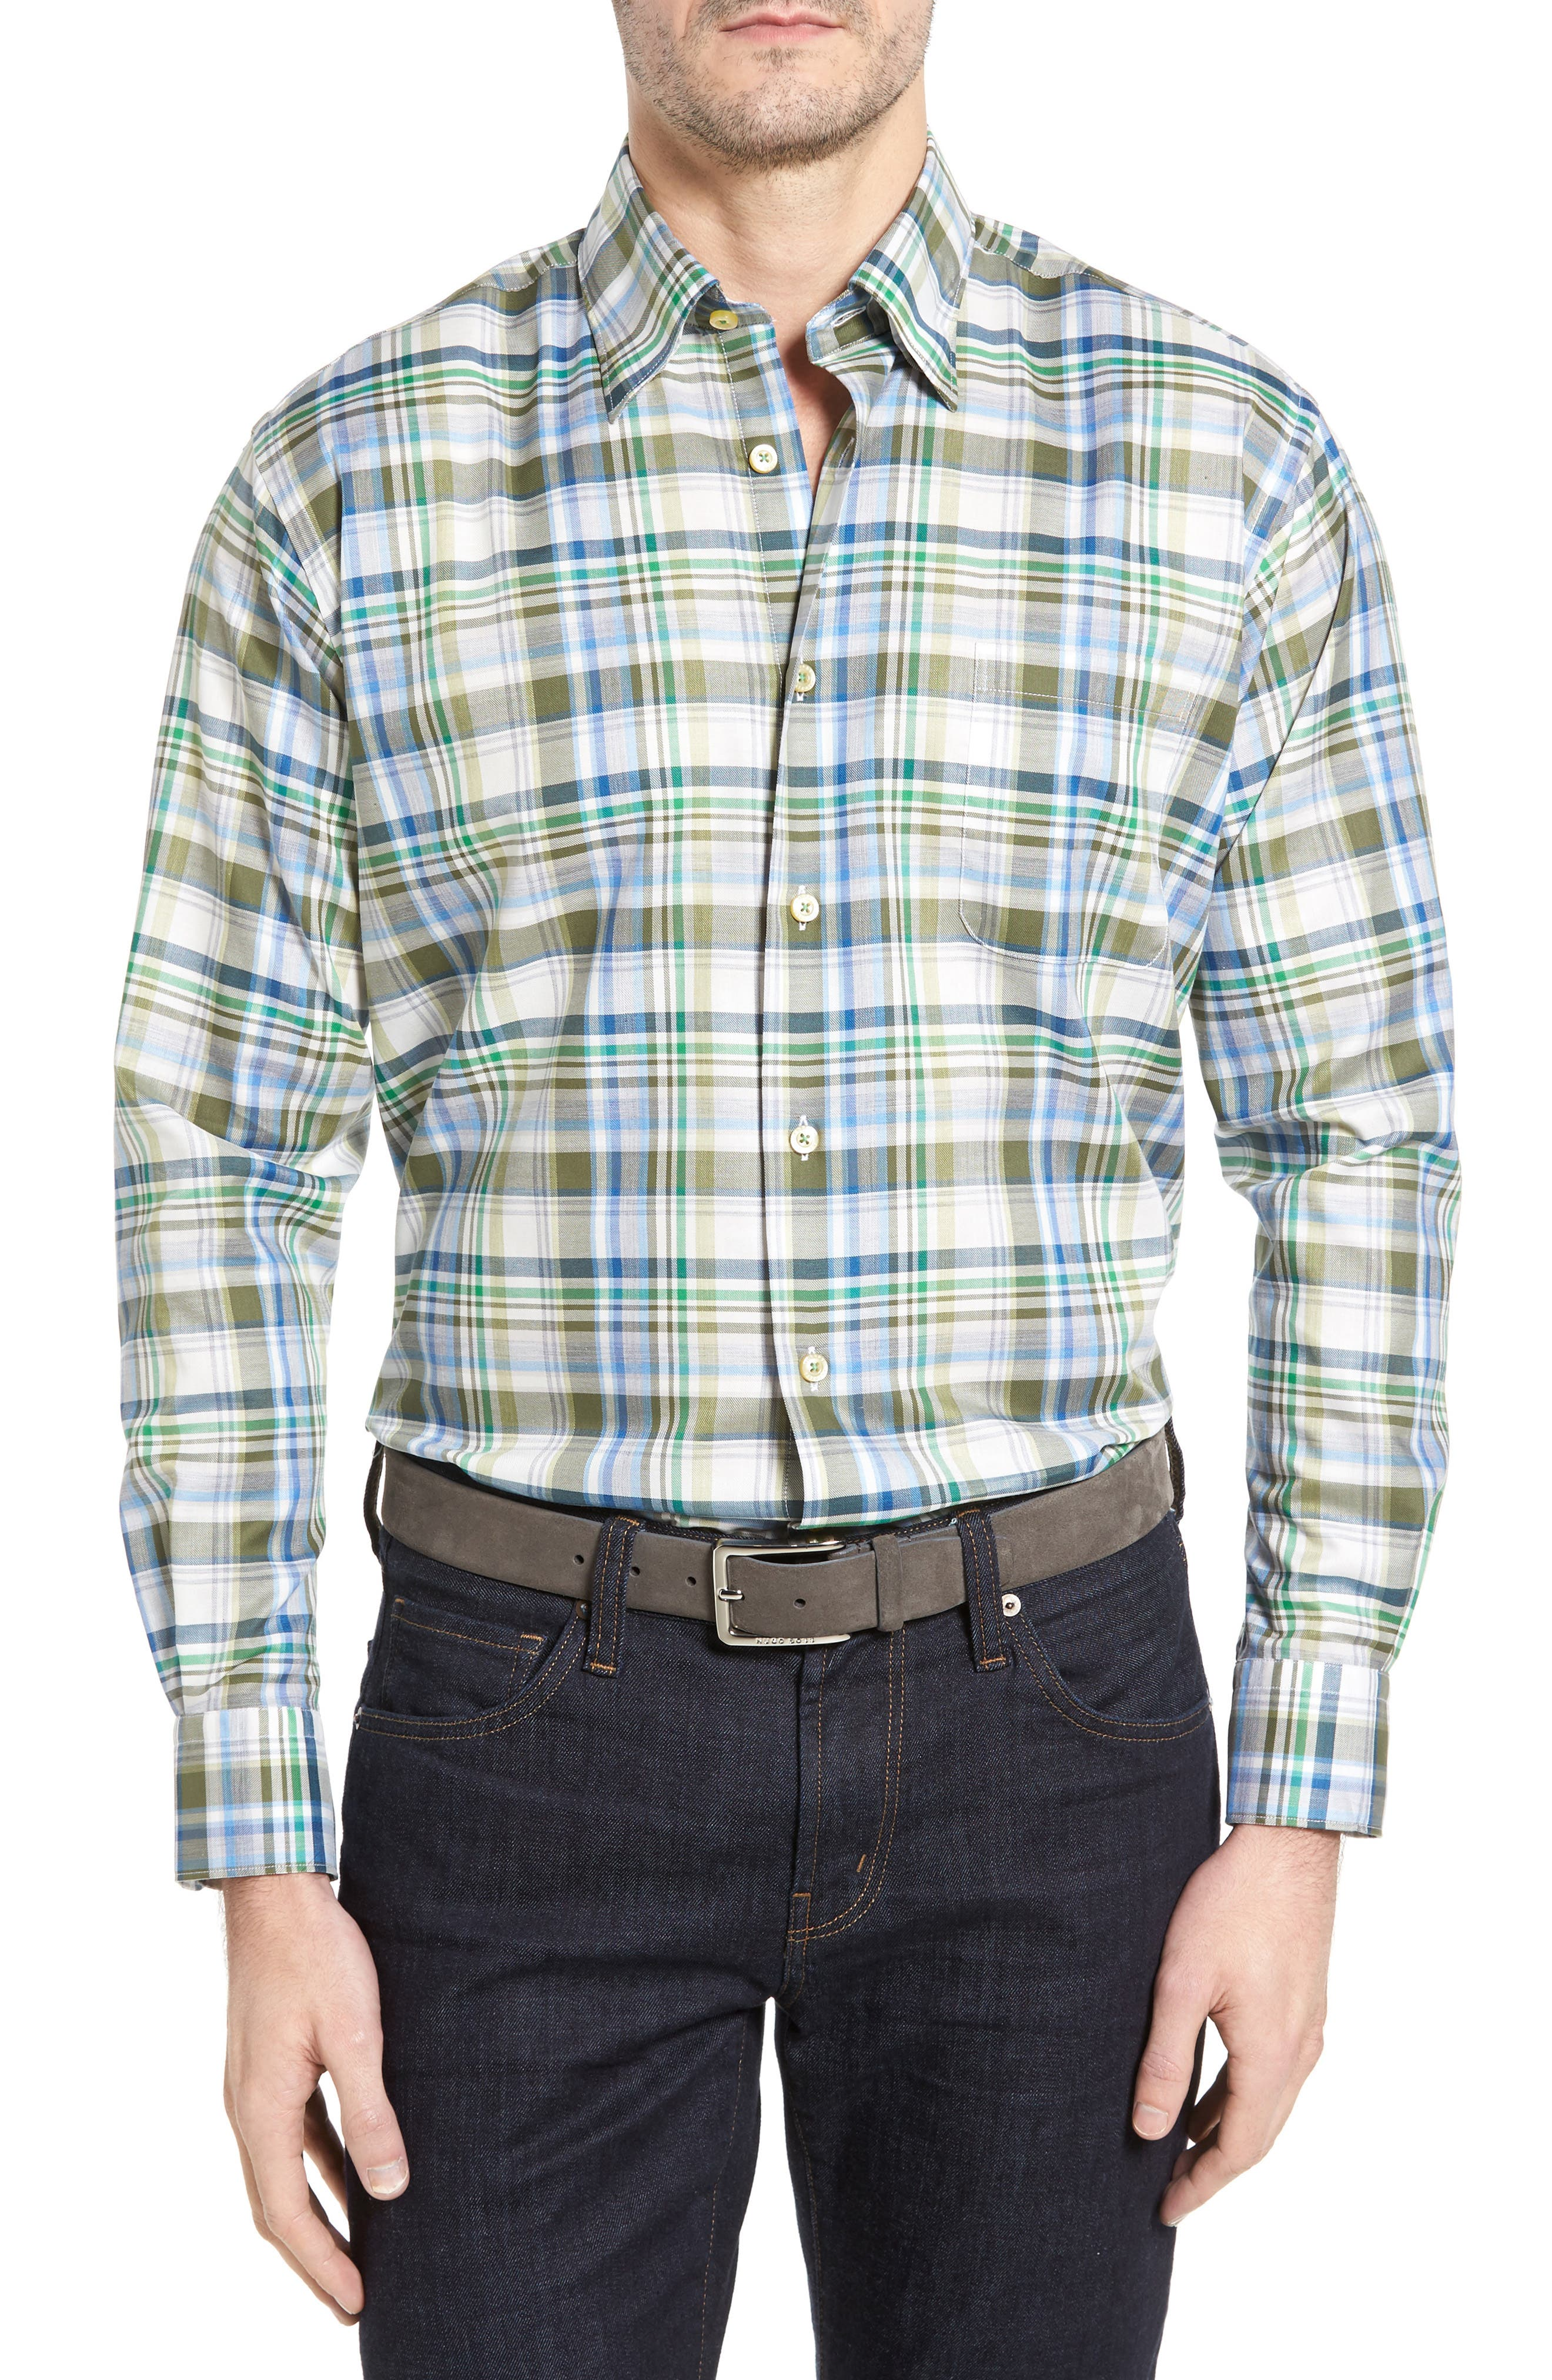 Anderson Classic Fit Plaid Micro Twill Sport Shirt,                             Main thumbnail 1, color,                             300